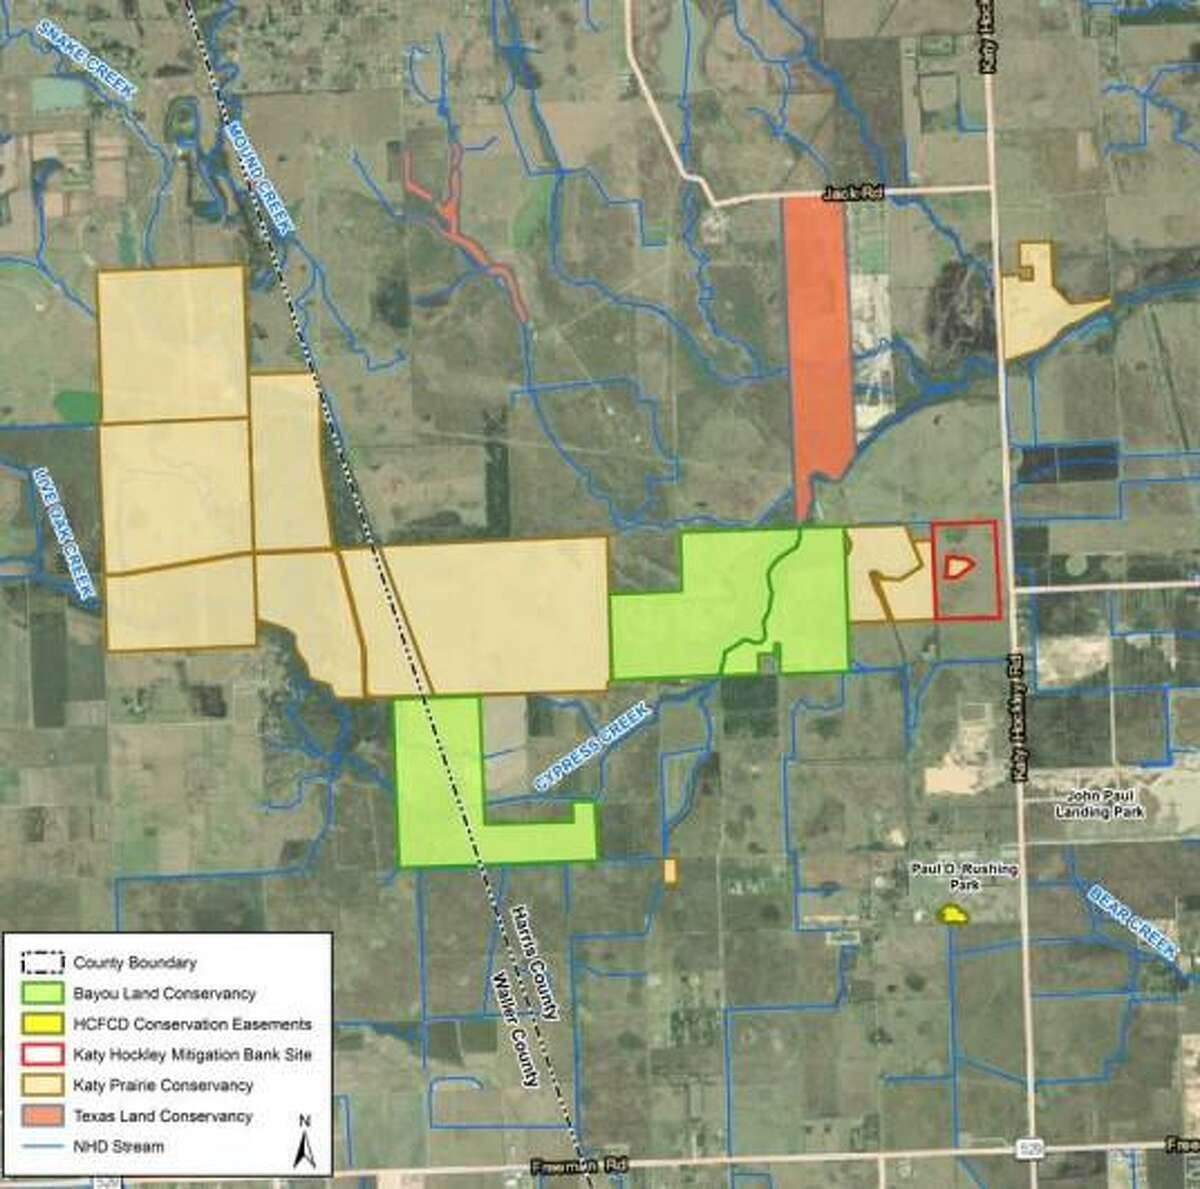 This map shows the location of the new wetlands mitigation project.